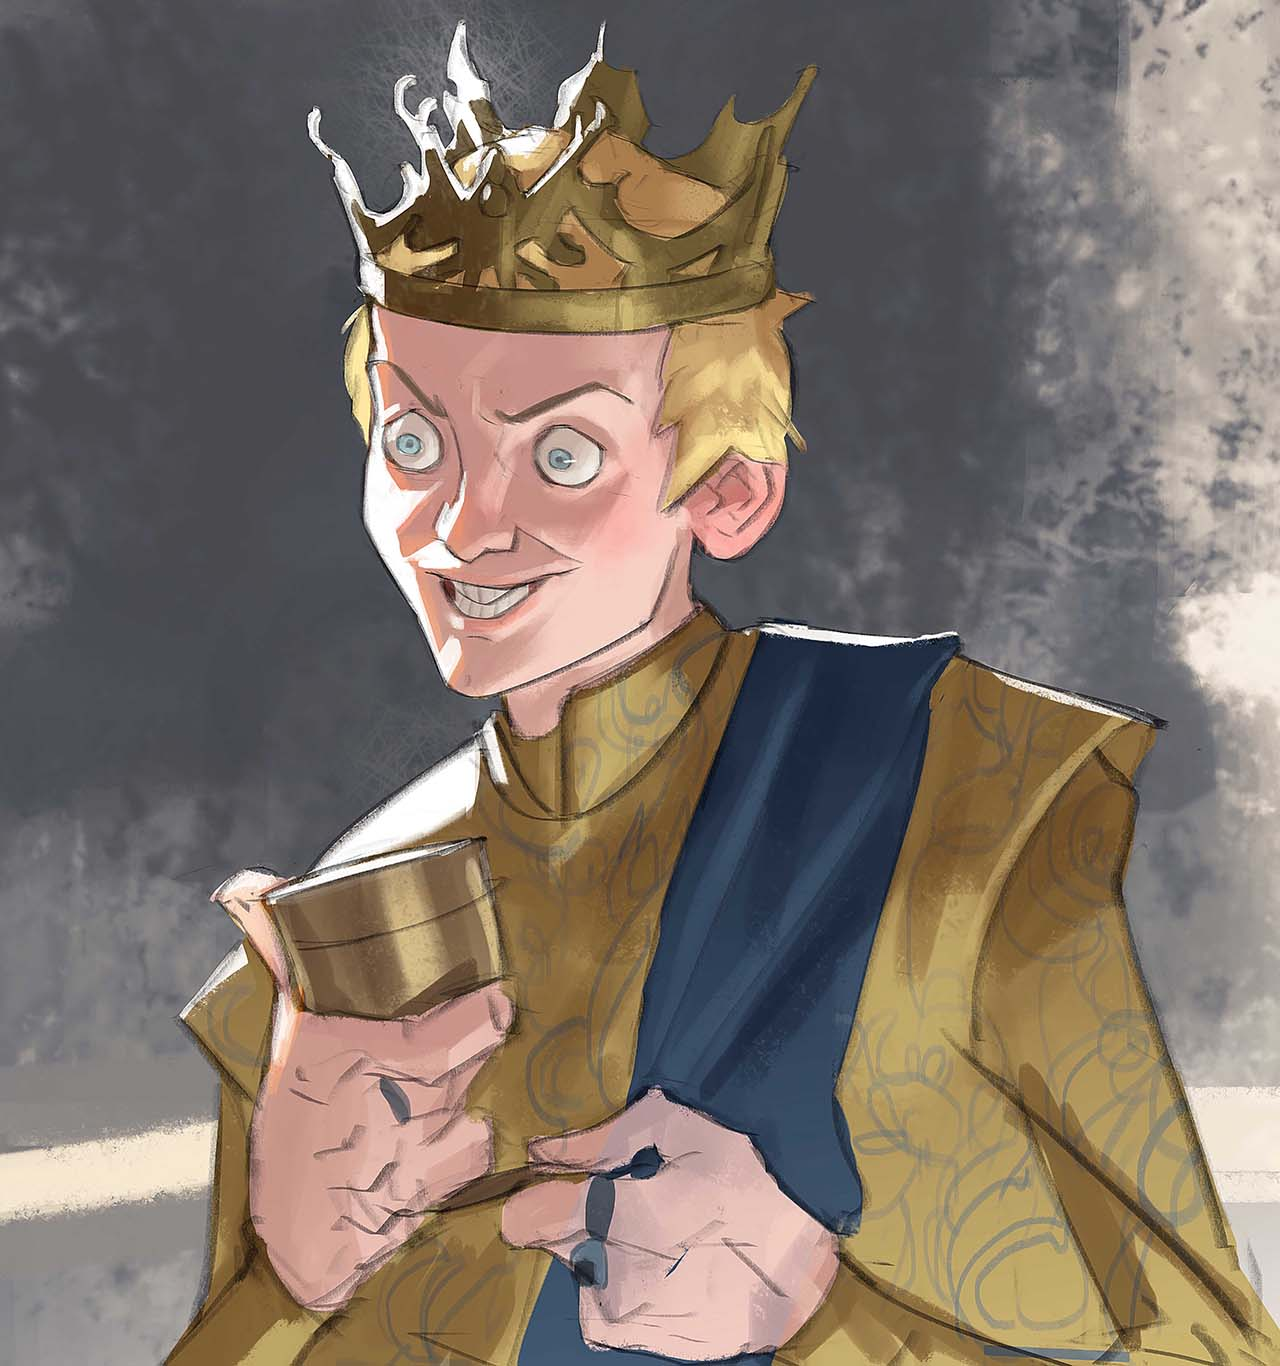 Artist Creates Unique Character Arts From Game Of Thrones – Joffrey Baratheon Character Art By Ramón Nuñez